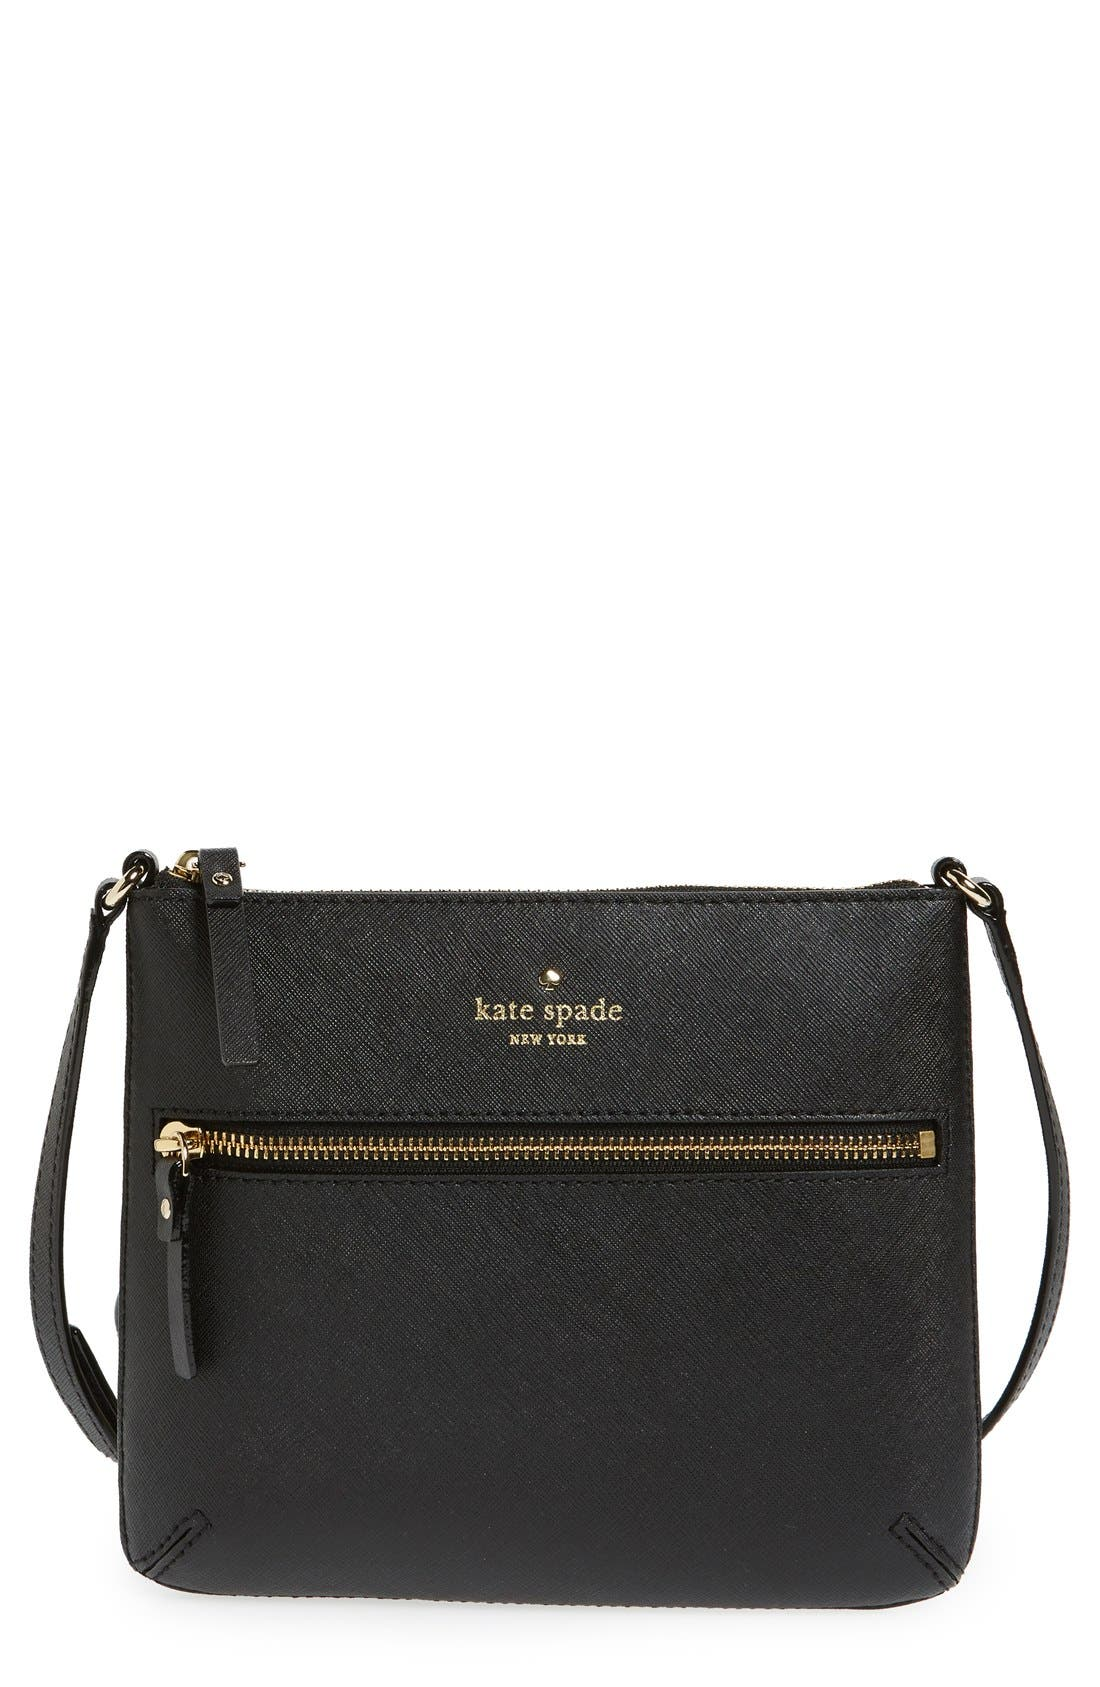 Main Image - kate spade new york 'tenley' saffiano leather crossbody bag